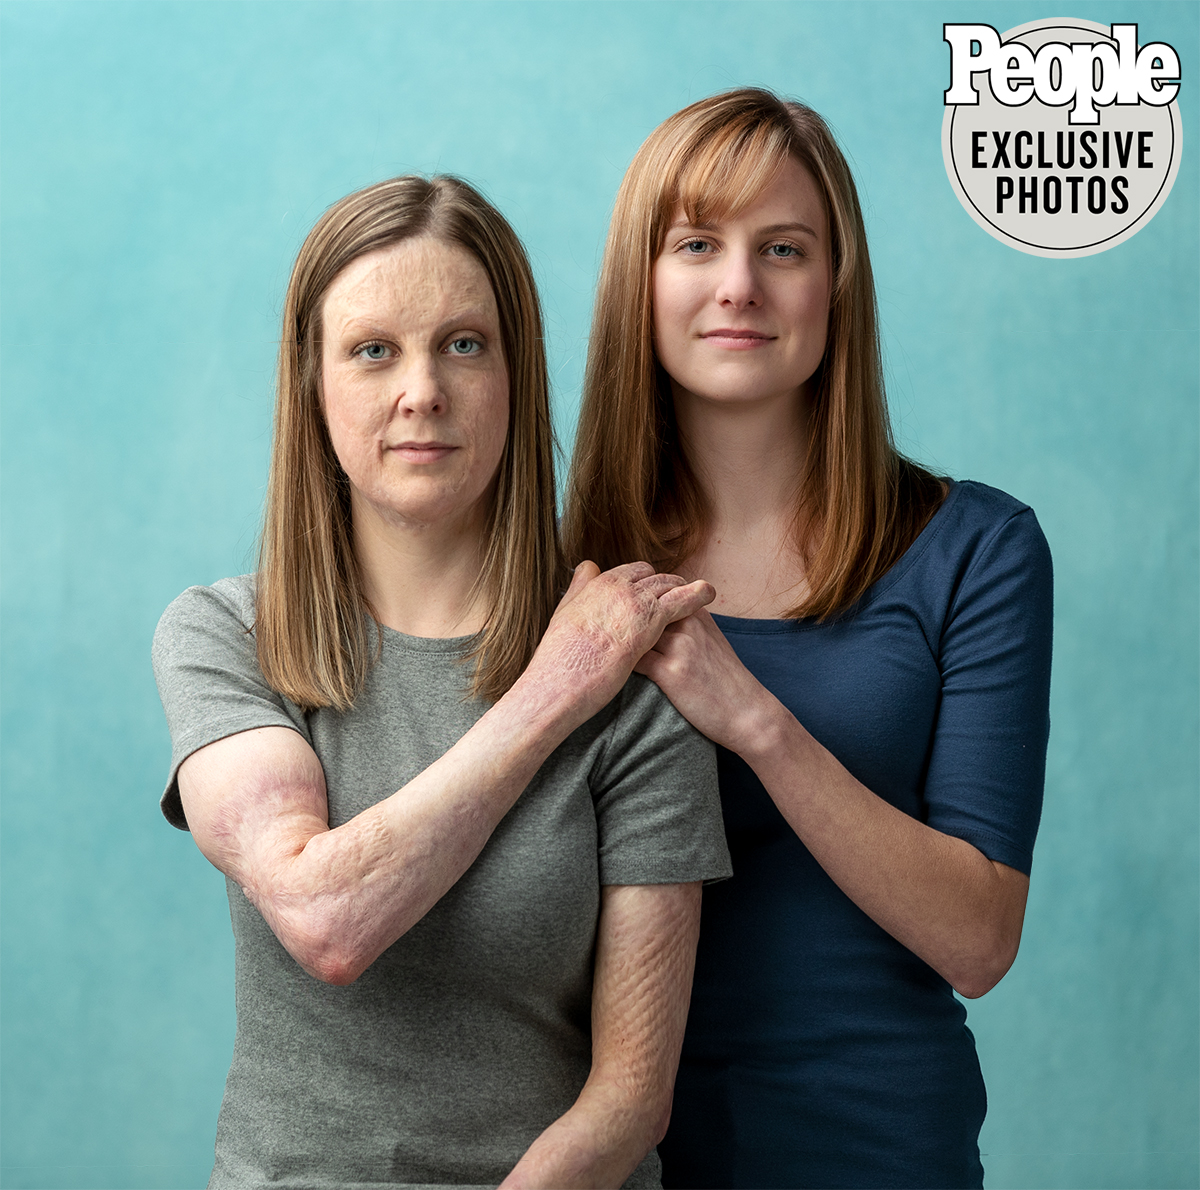 Identical Twins Michelle Lauren Anderson and Katherine Anderson-Hill, November 10, 2019, Minneapolis, MN.